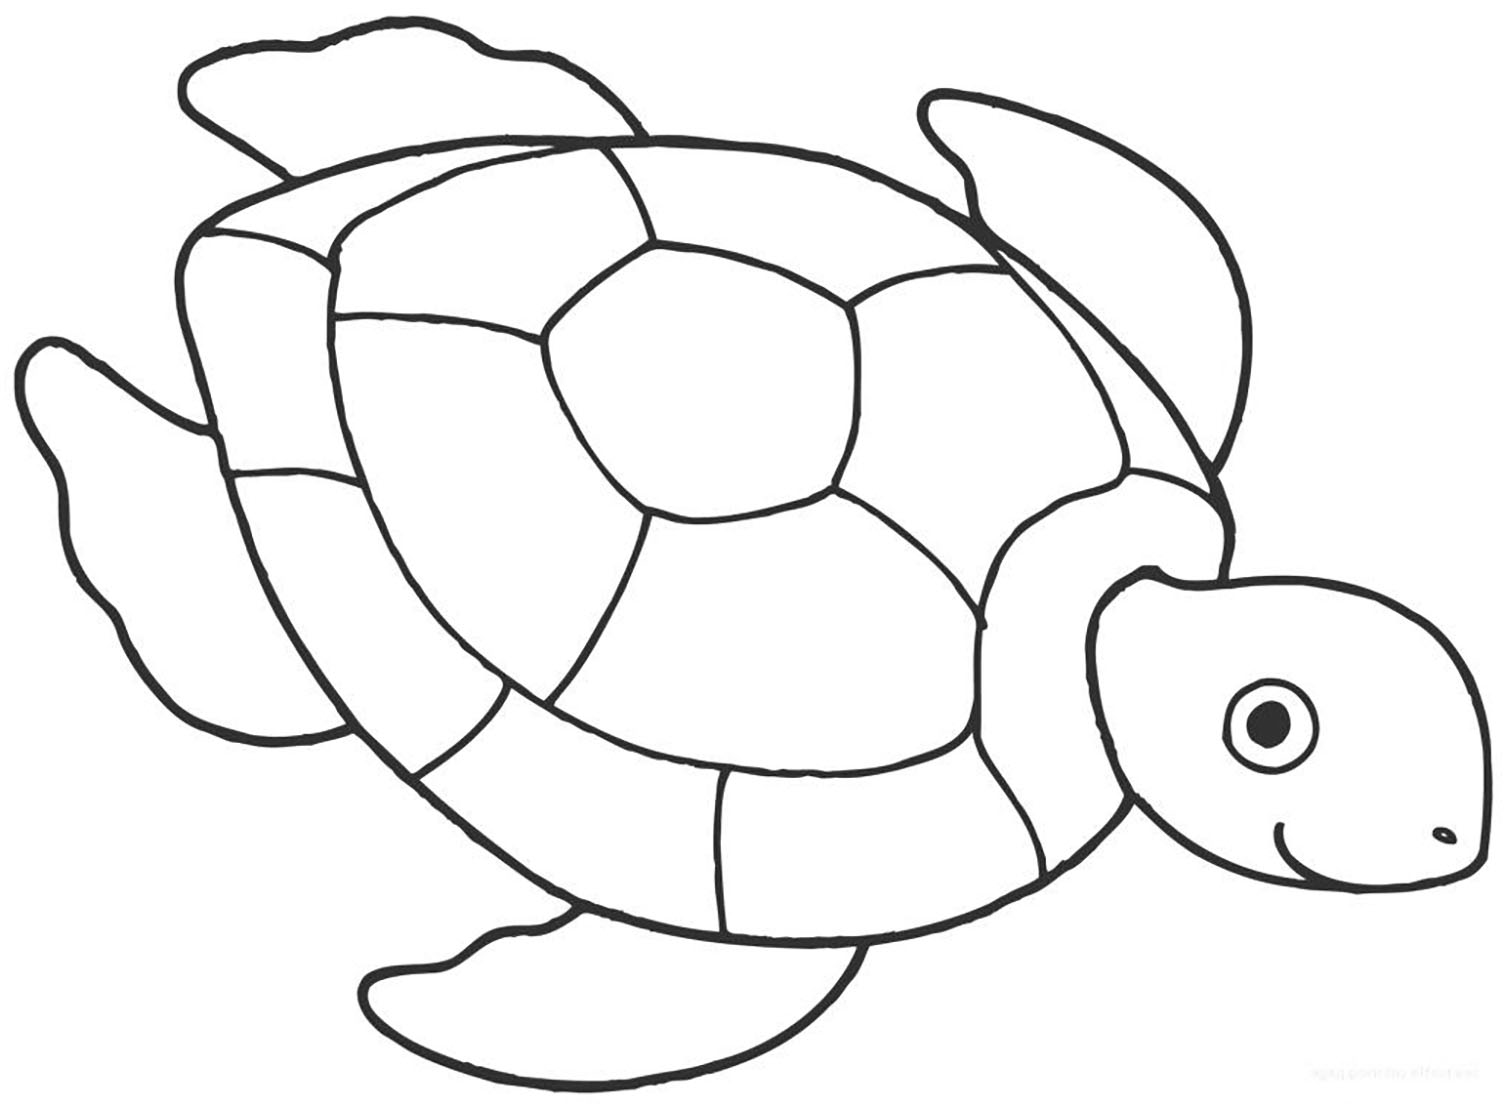 turtle coloring pictures to print sea turtle coloring pages coloringrocks turtle turtle to pictures coloring print